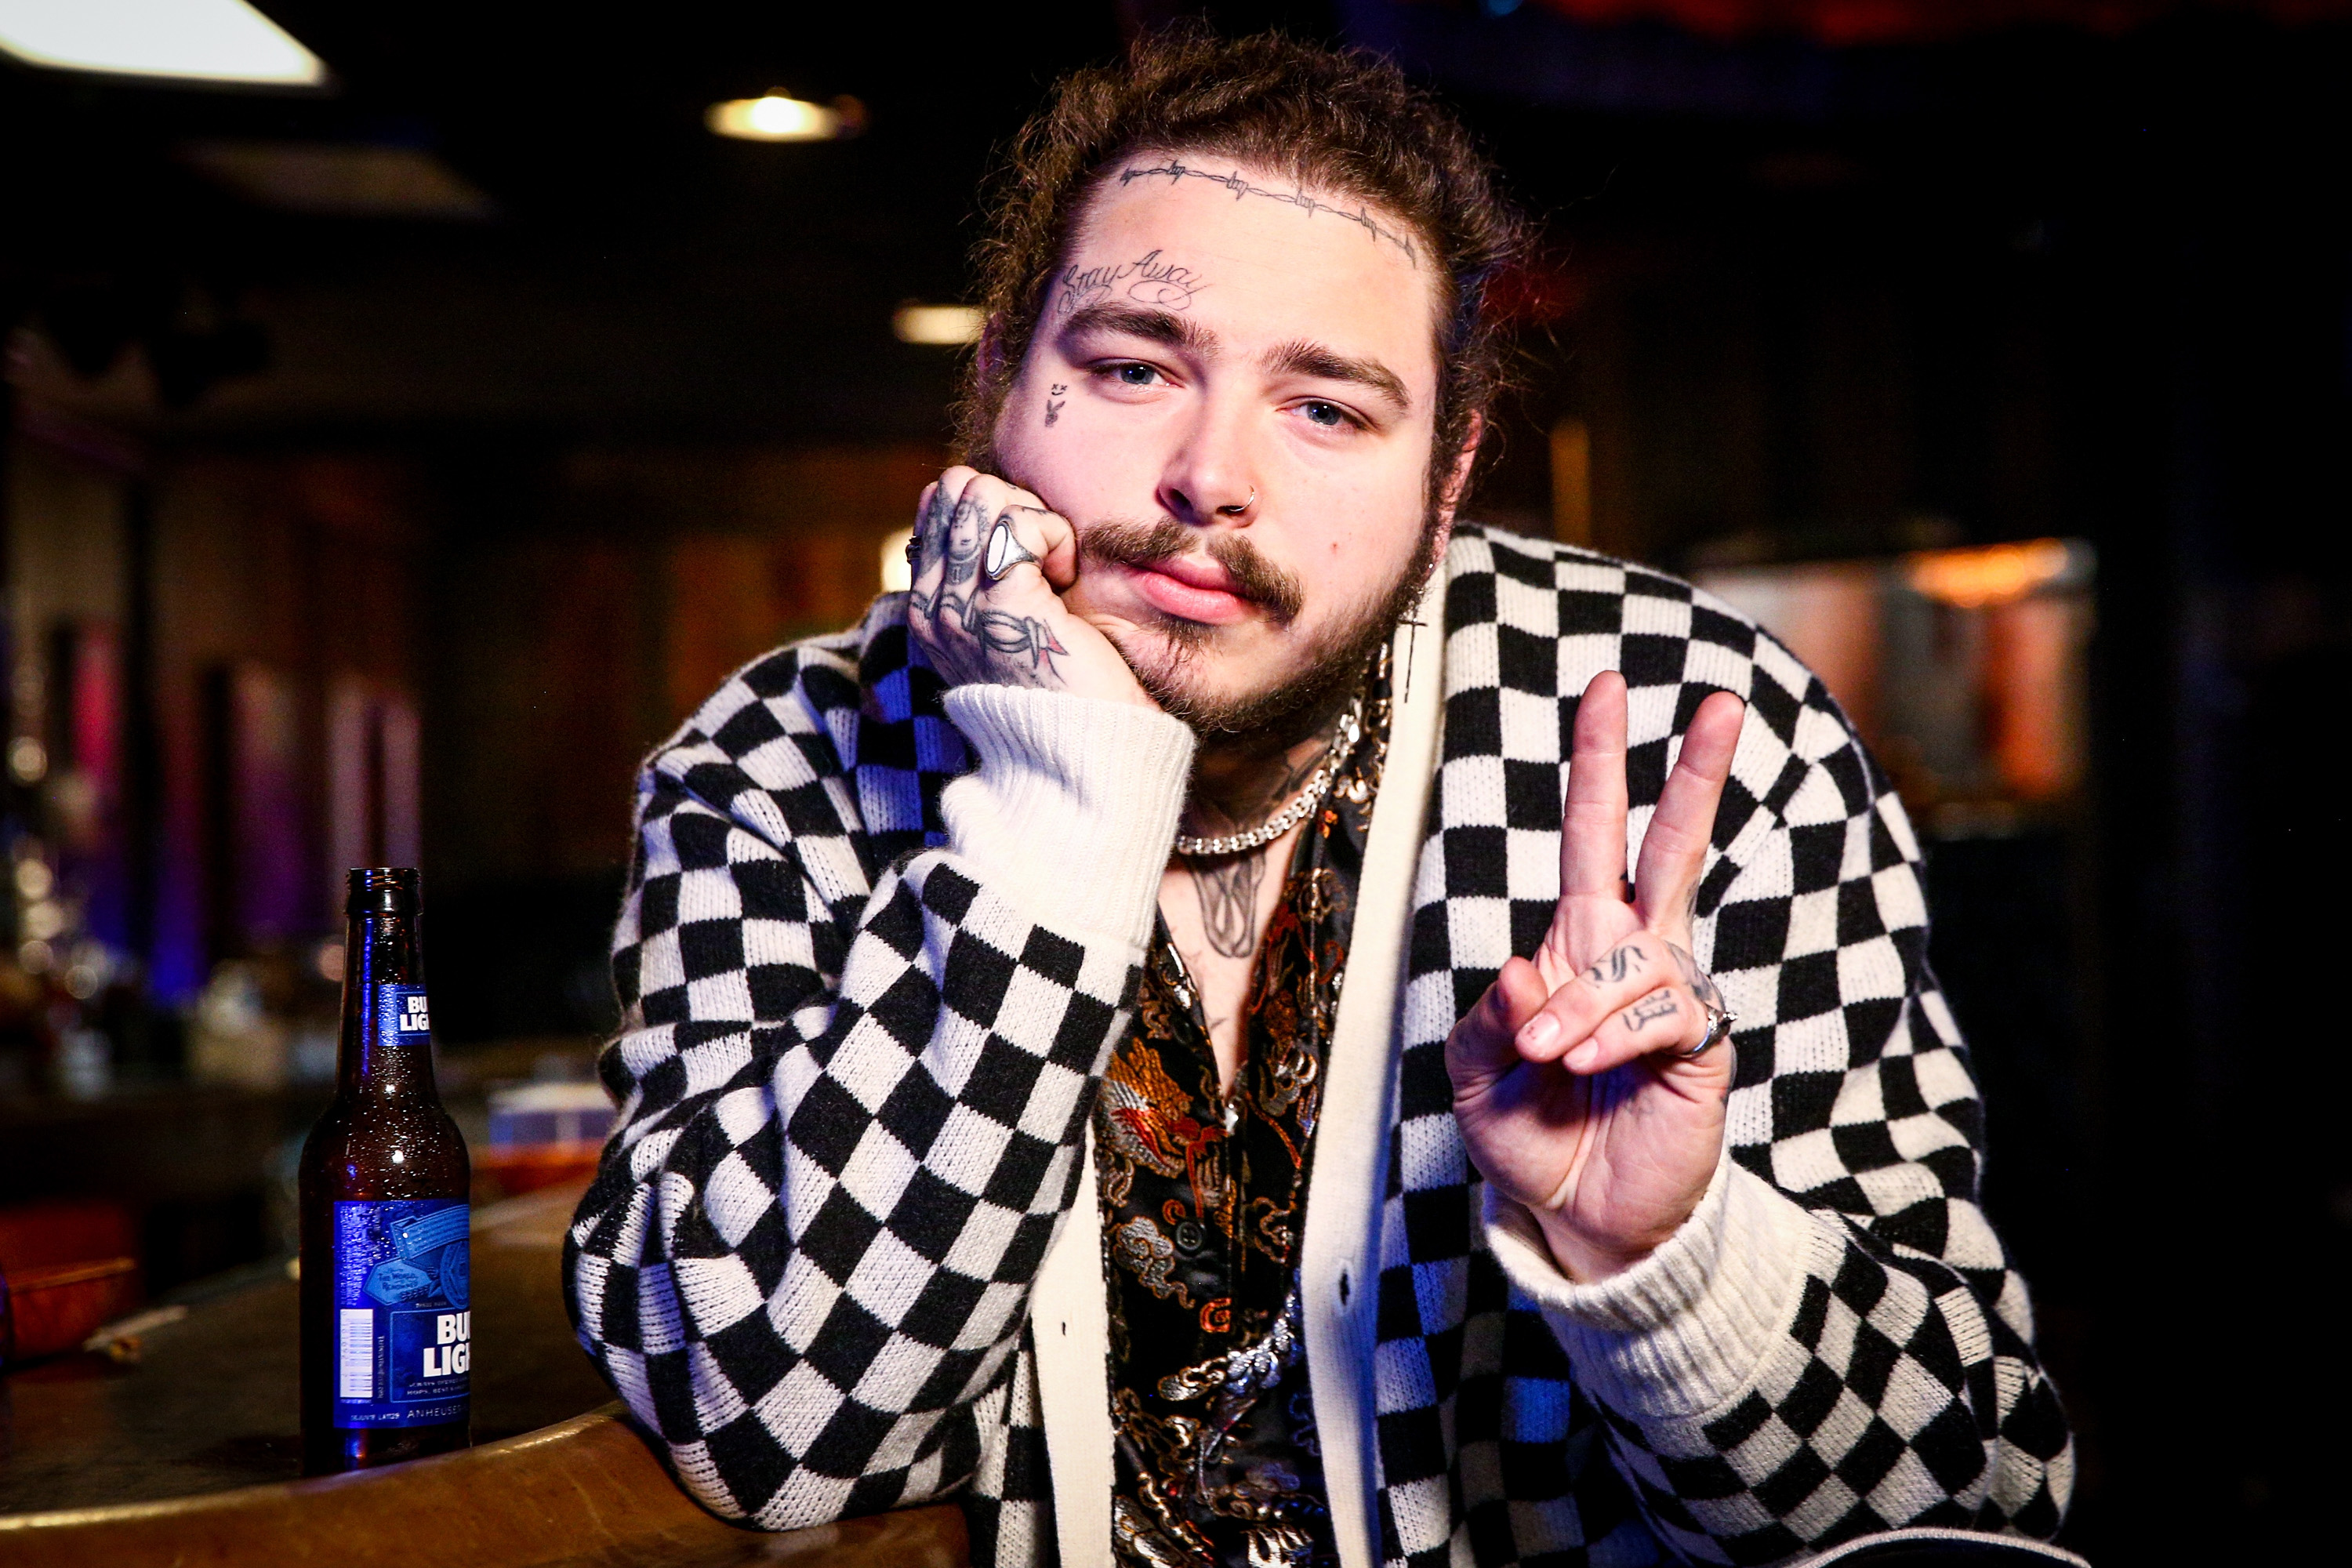 Fans Unearth Post Malone's Old Emo SoundCloud